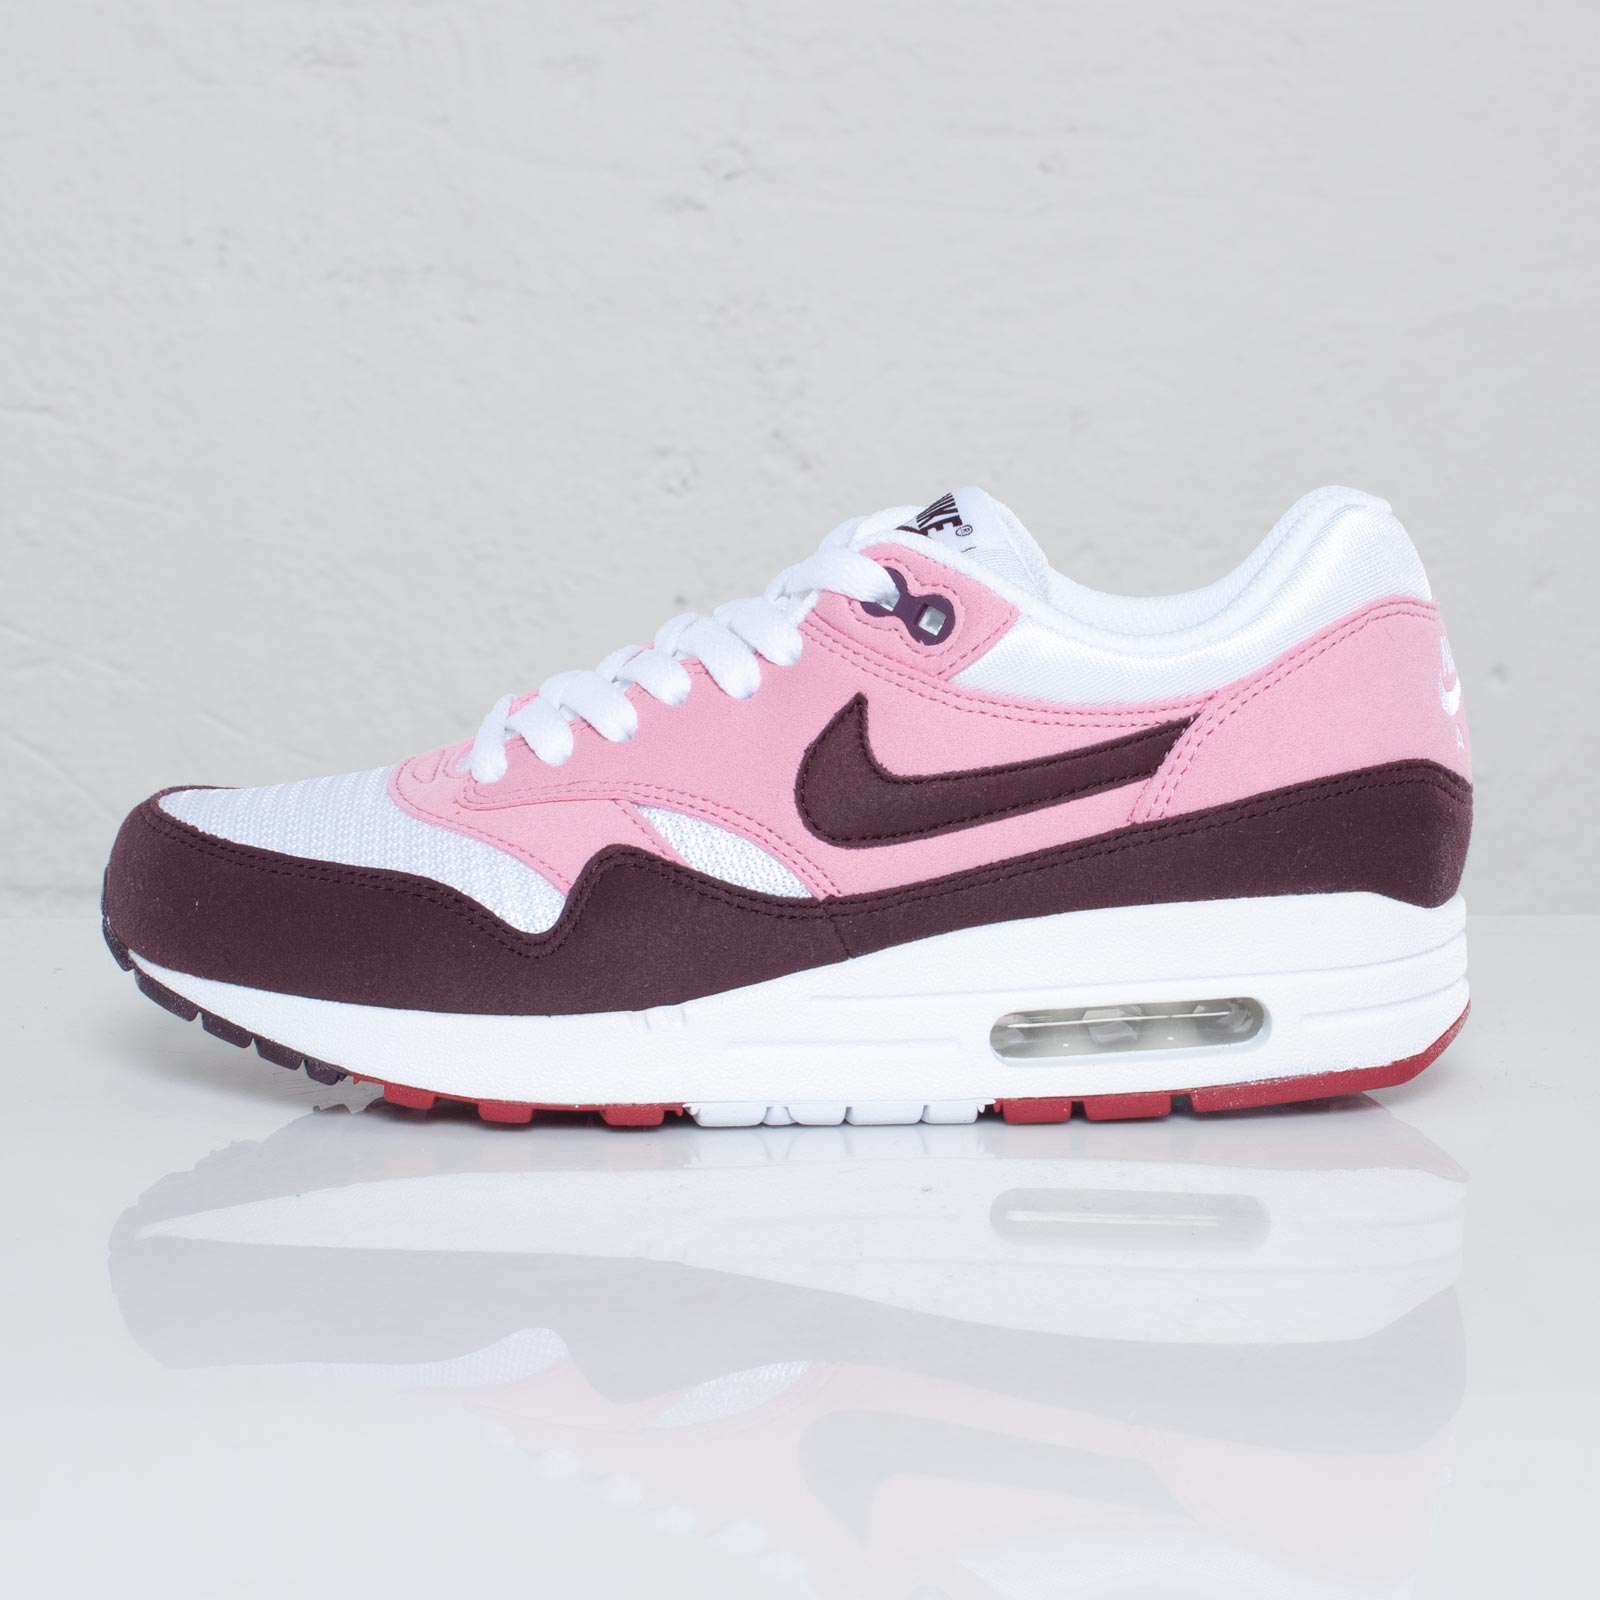 cheap for discount 47ed7 177cc Nike Wmns Air Max 1 - 109380 - Sneakersnstuff   sneakers   streetwear  online since 1999